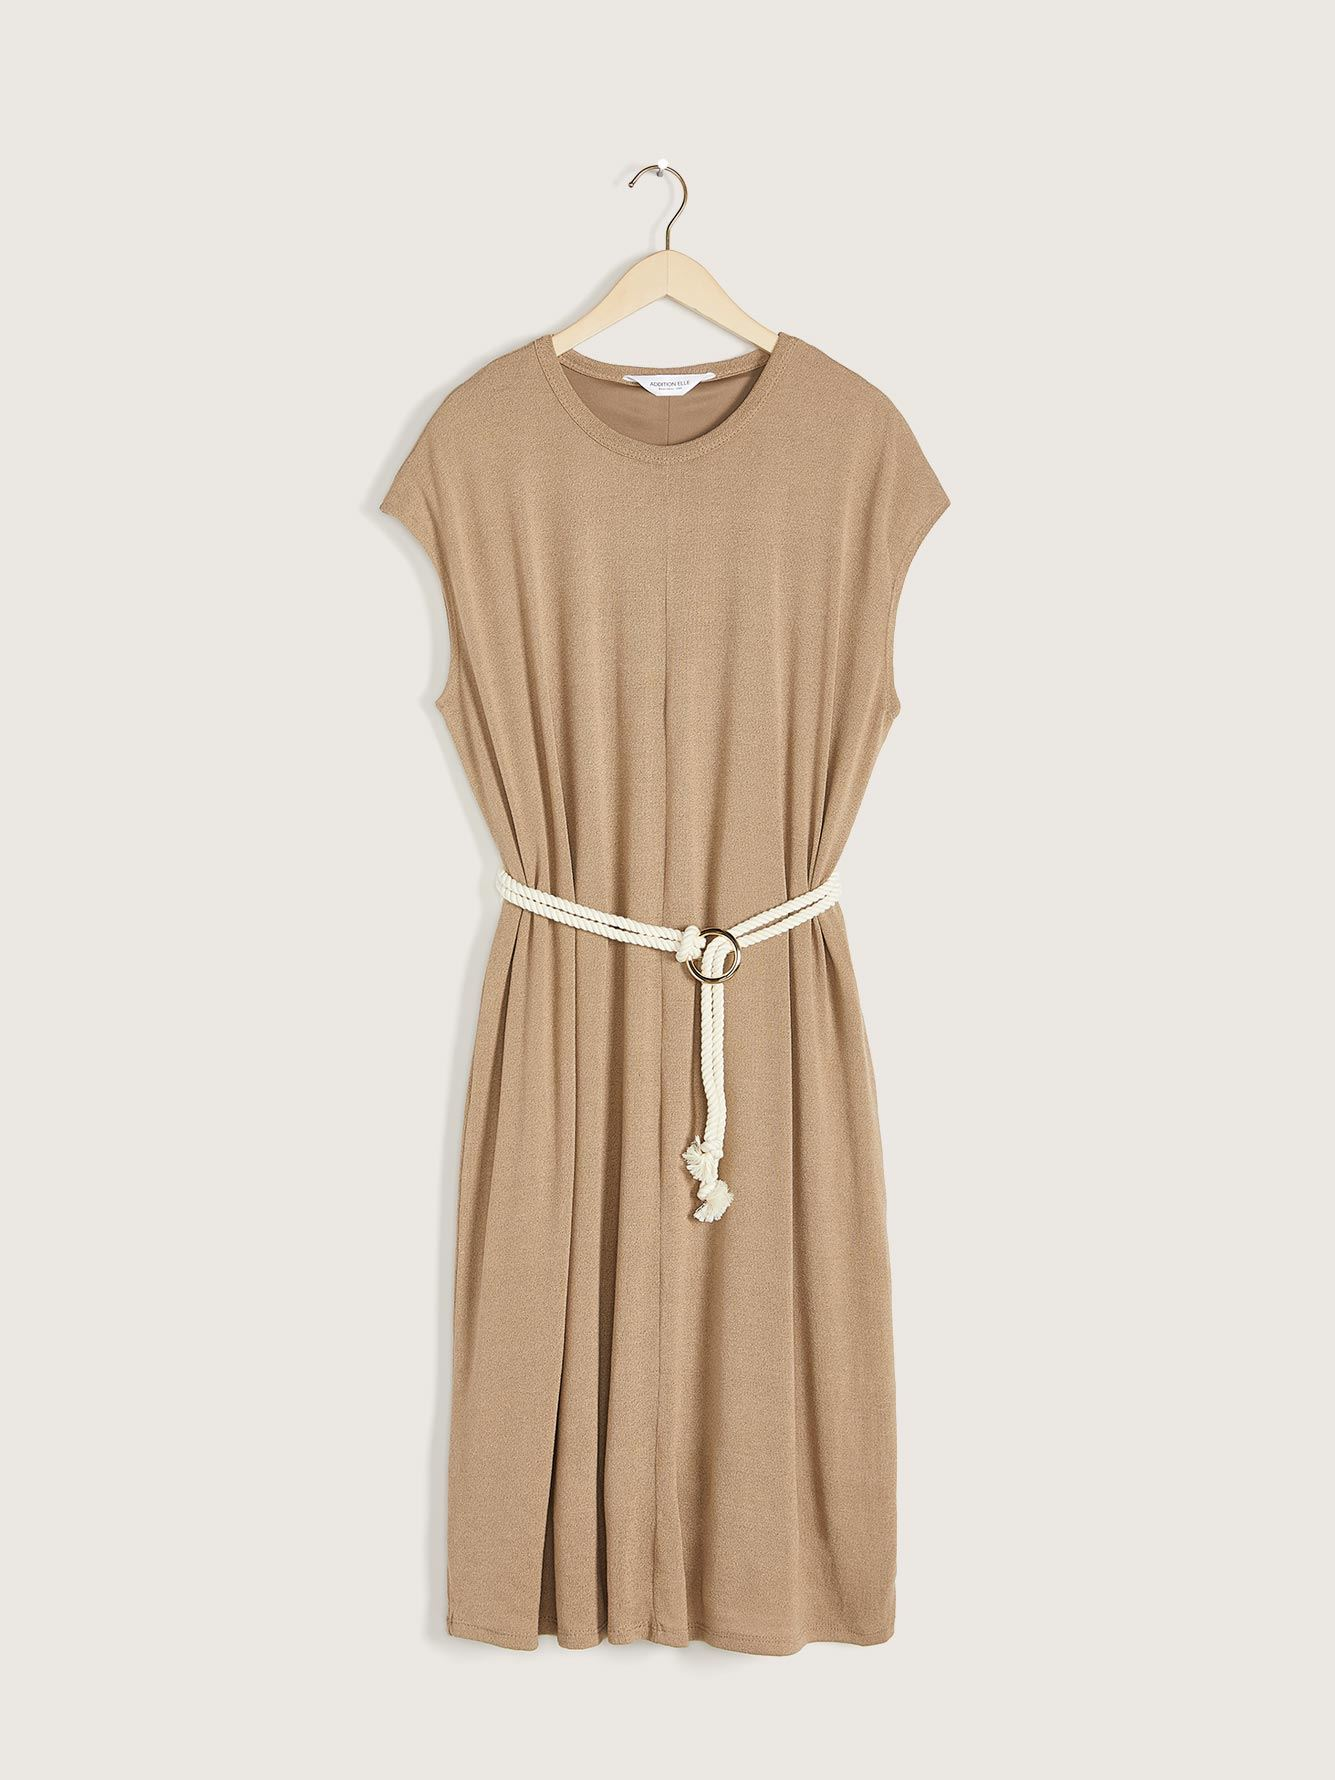 Solid Midi Dress with Rope Belt - Addition Elle 7